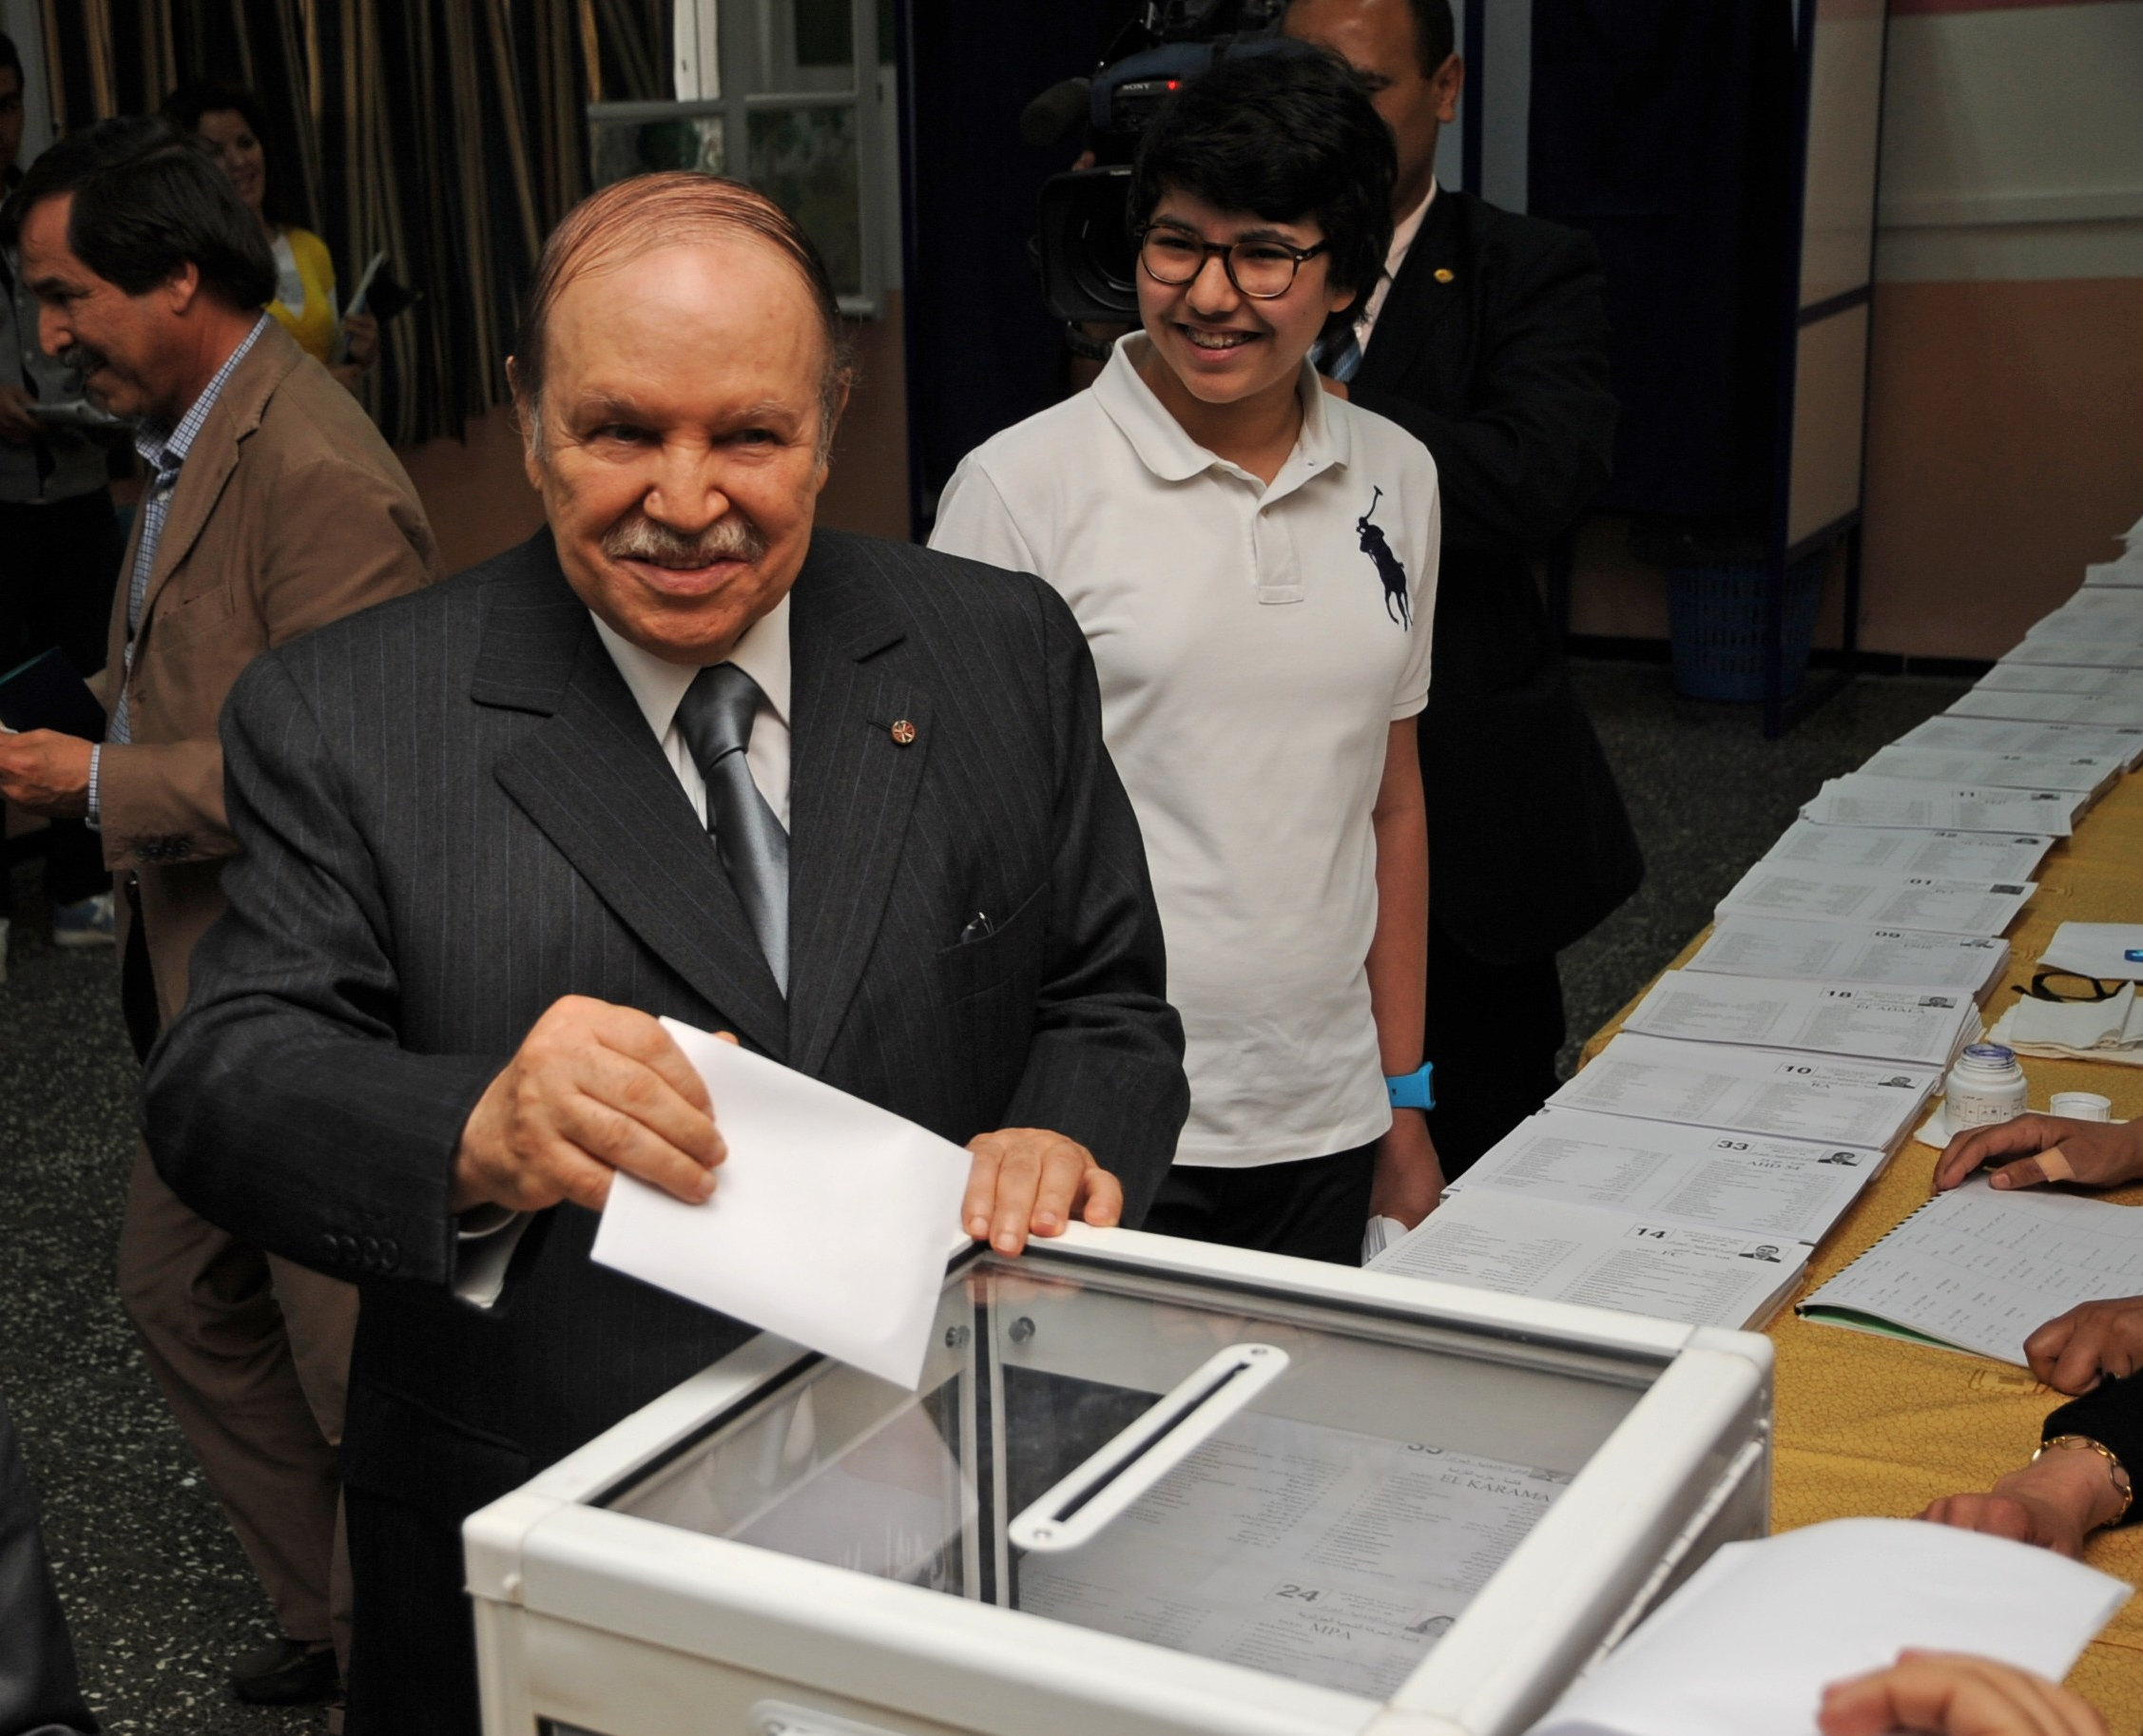 abdelaziz_bouteflika_casts_his_ballot_in_may_10ths_2012_legislative_election.jpg